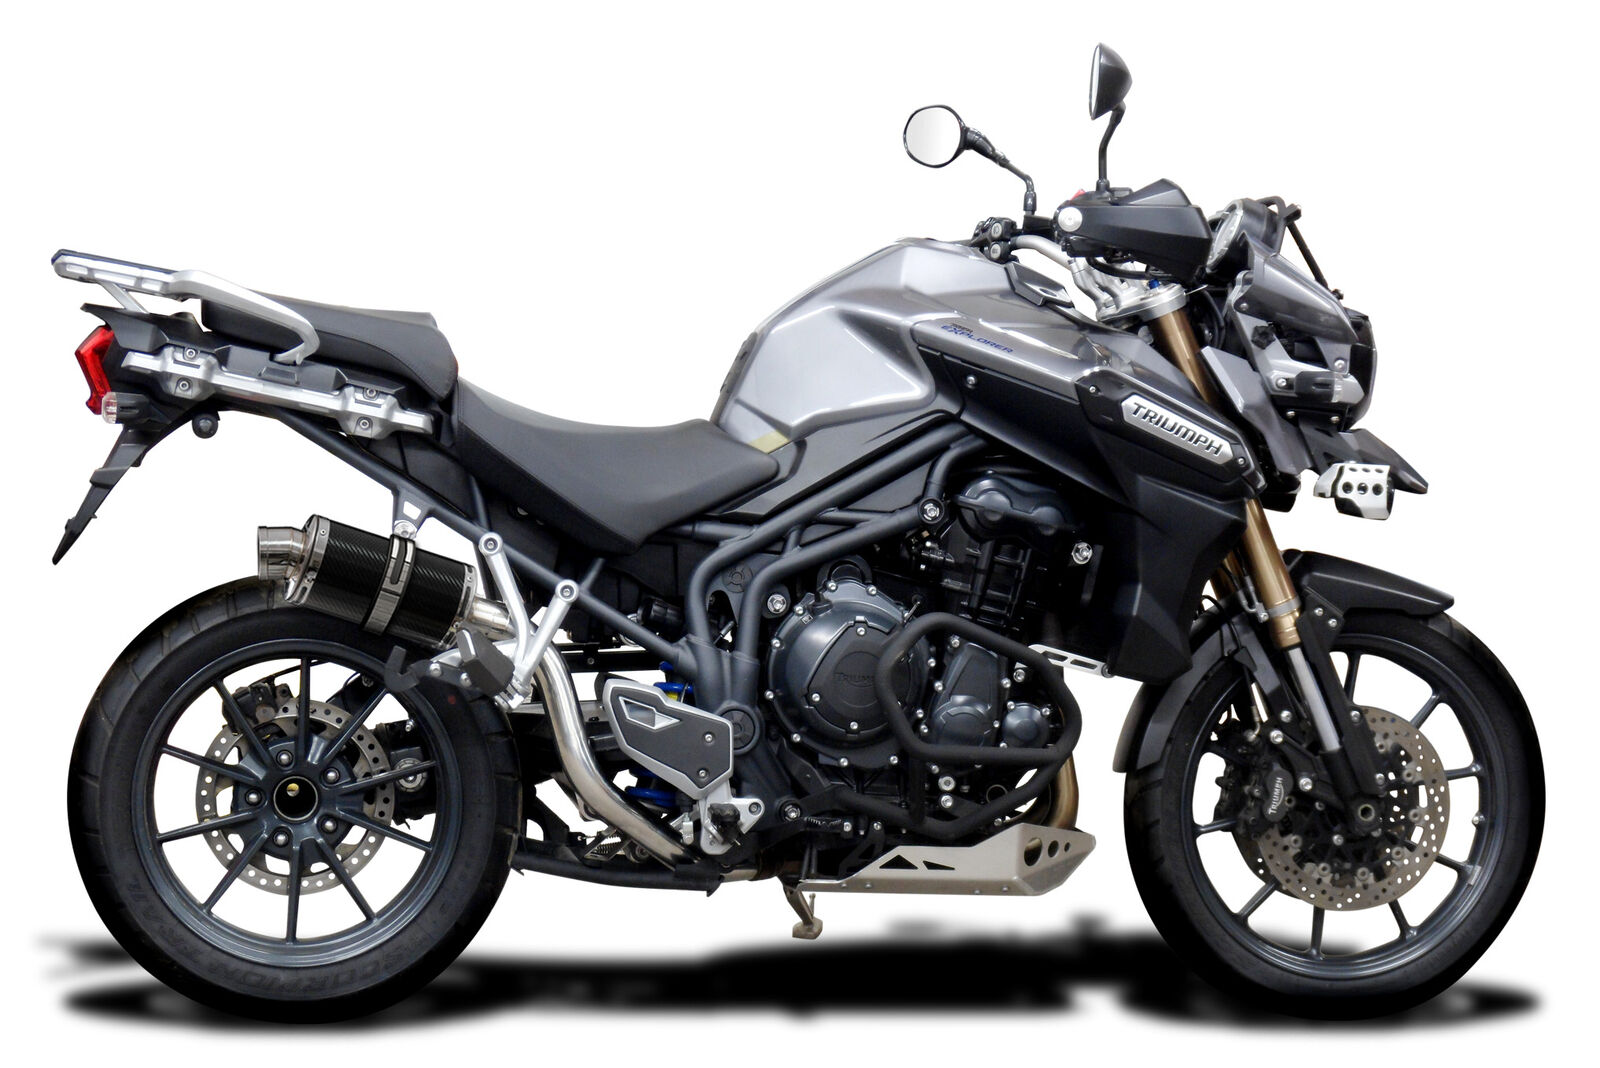 Delkevic Aftermarket Slip On compatible with Triumph Tiger Explorer 1200 DS70 9 Carbon Fiber Oval Muffler Exhaust 12-16